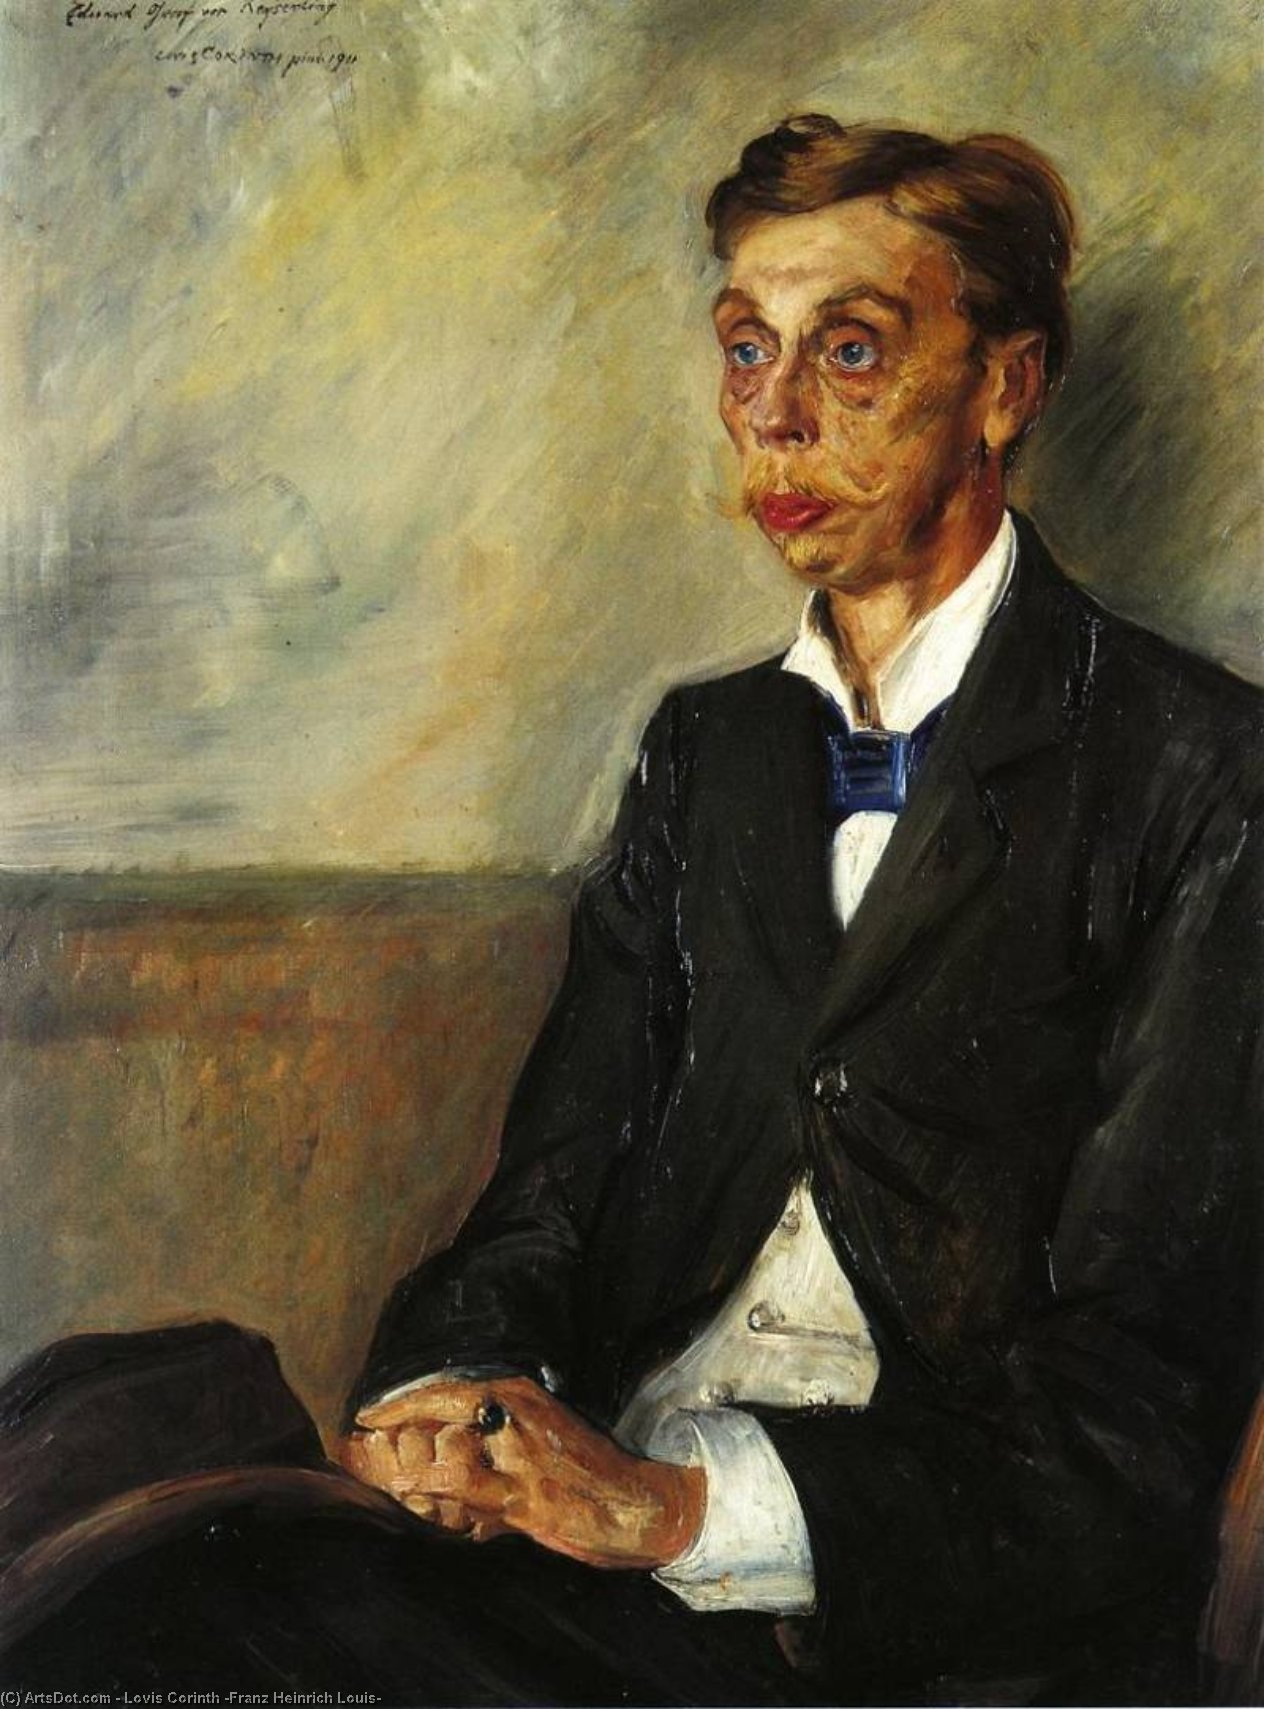 Portrait of Eduard, Count Keyserling, Oil On Canvas by Lovis Corinth (Franz Heinrich Louis) (1858-1925, Netherlands)